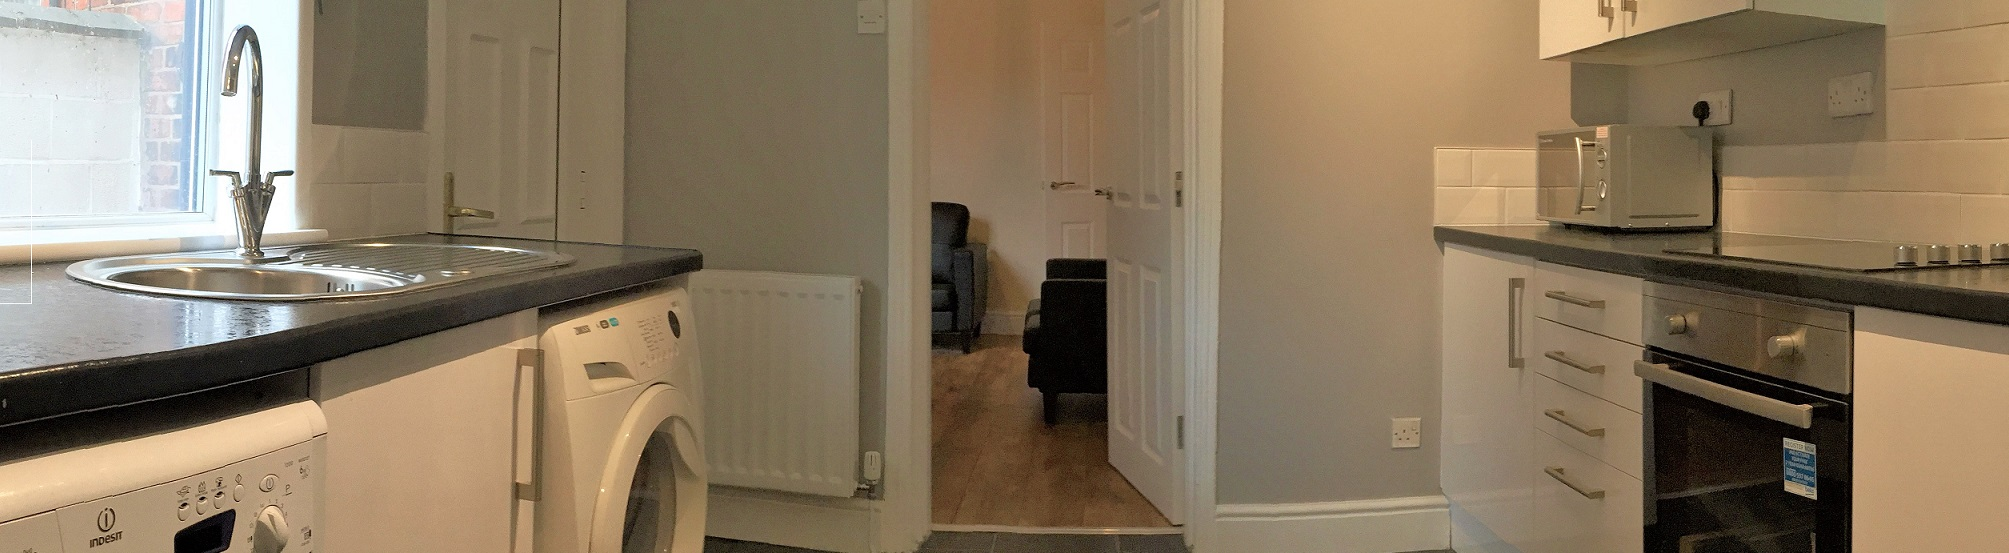 Room to Rent at Derrington Avenue, Crewe